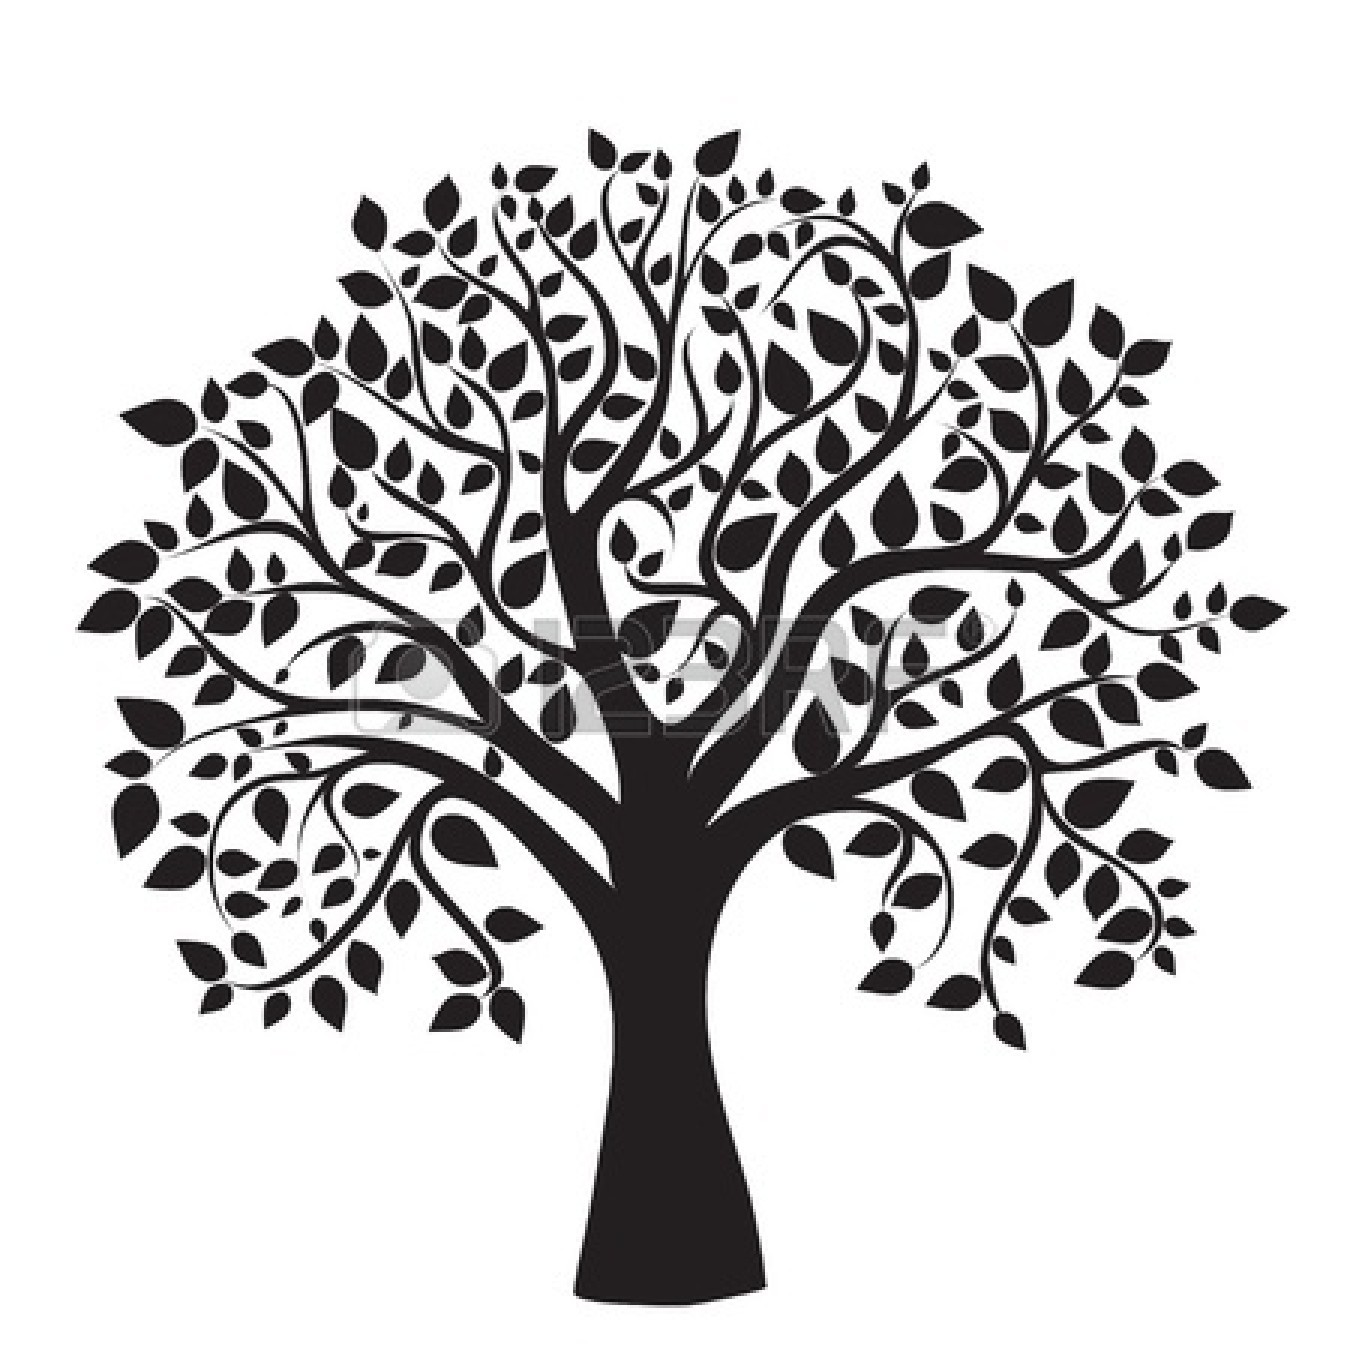 Family Tree Family Black And White Clipart Clipart Kid - Family Reunion Tree PNG